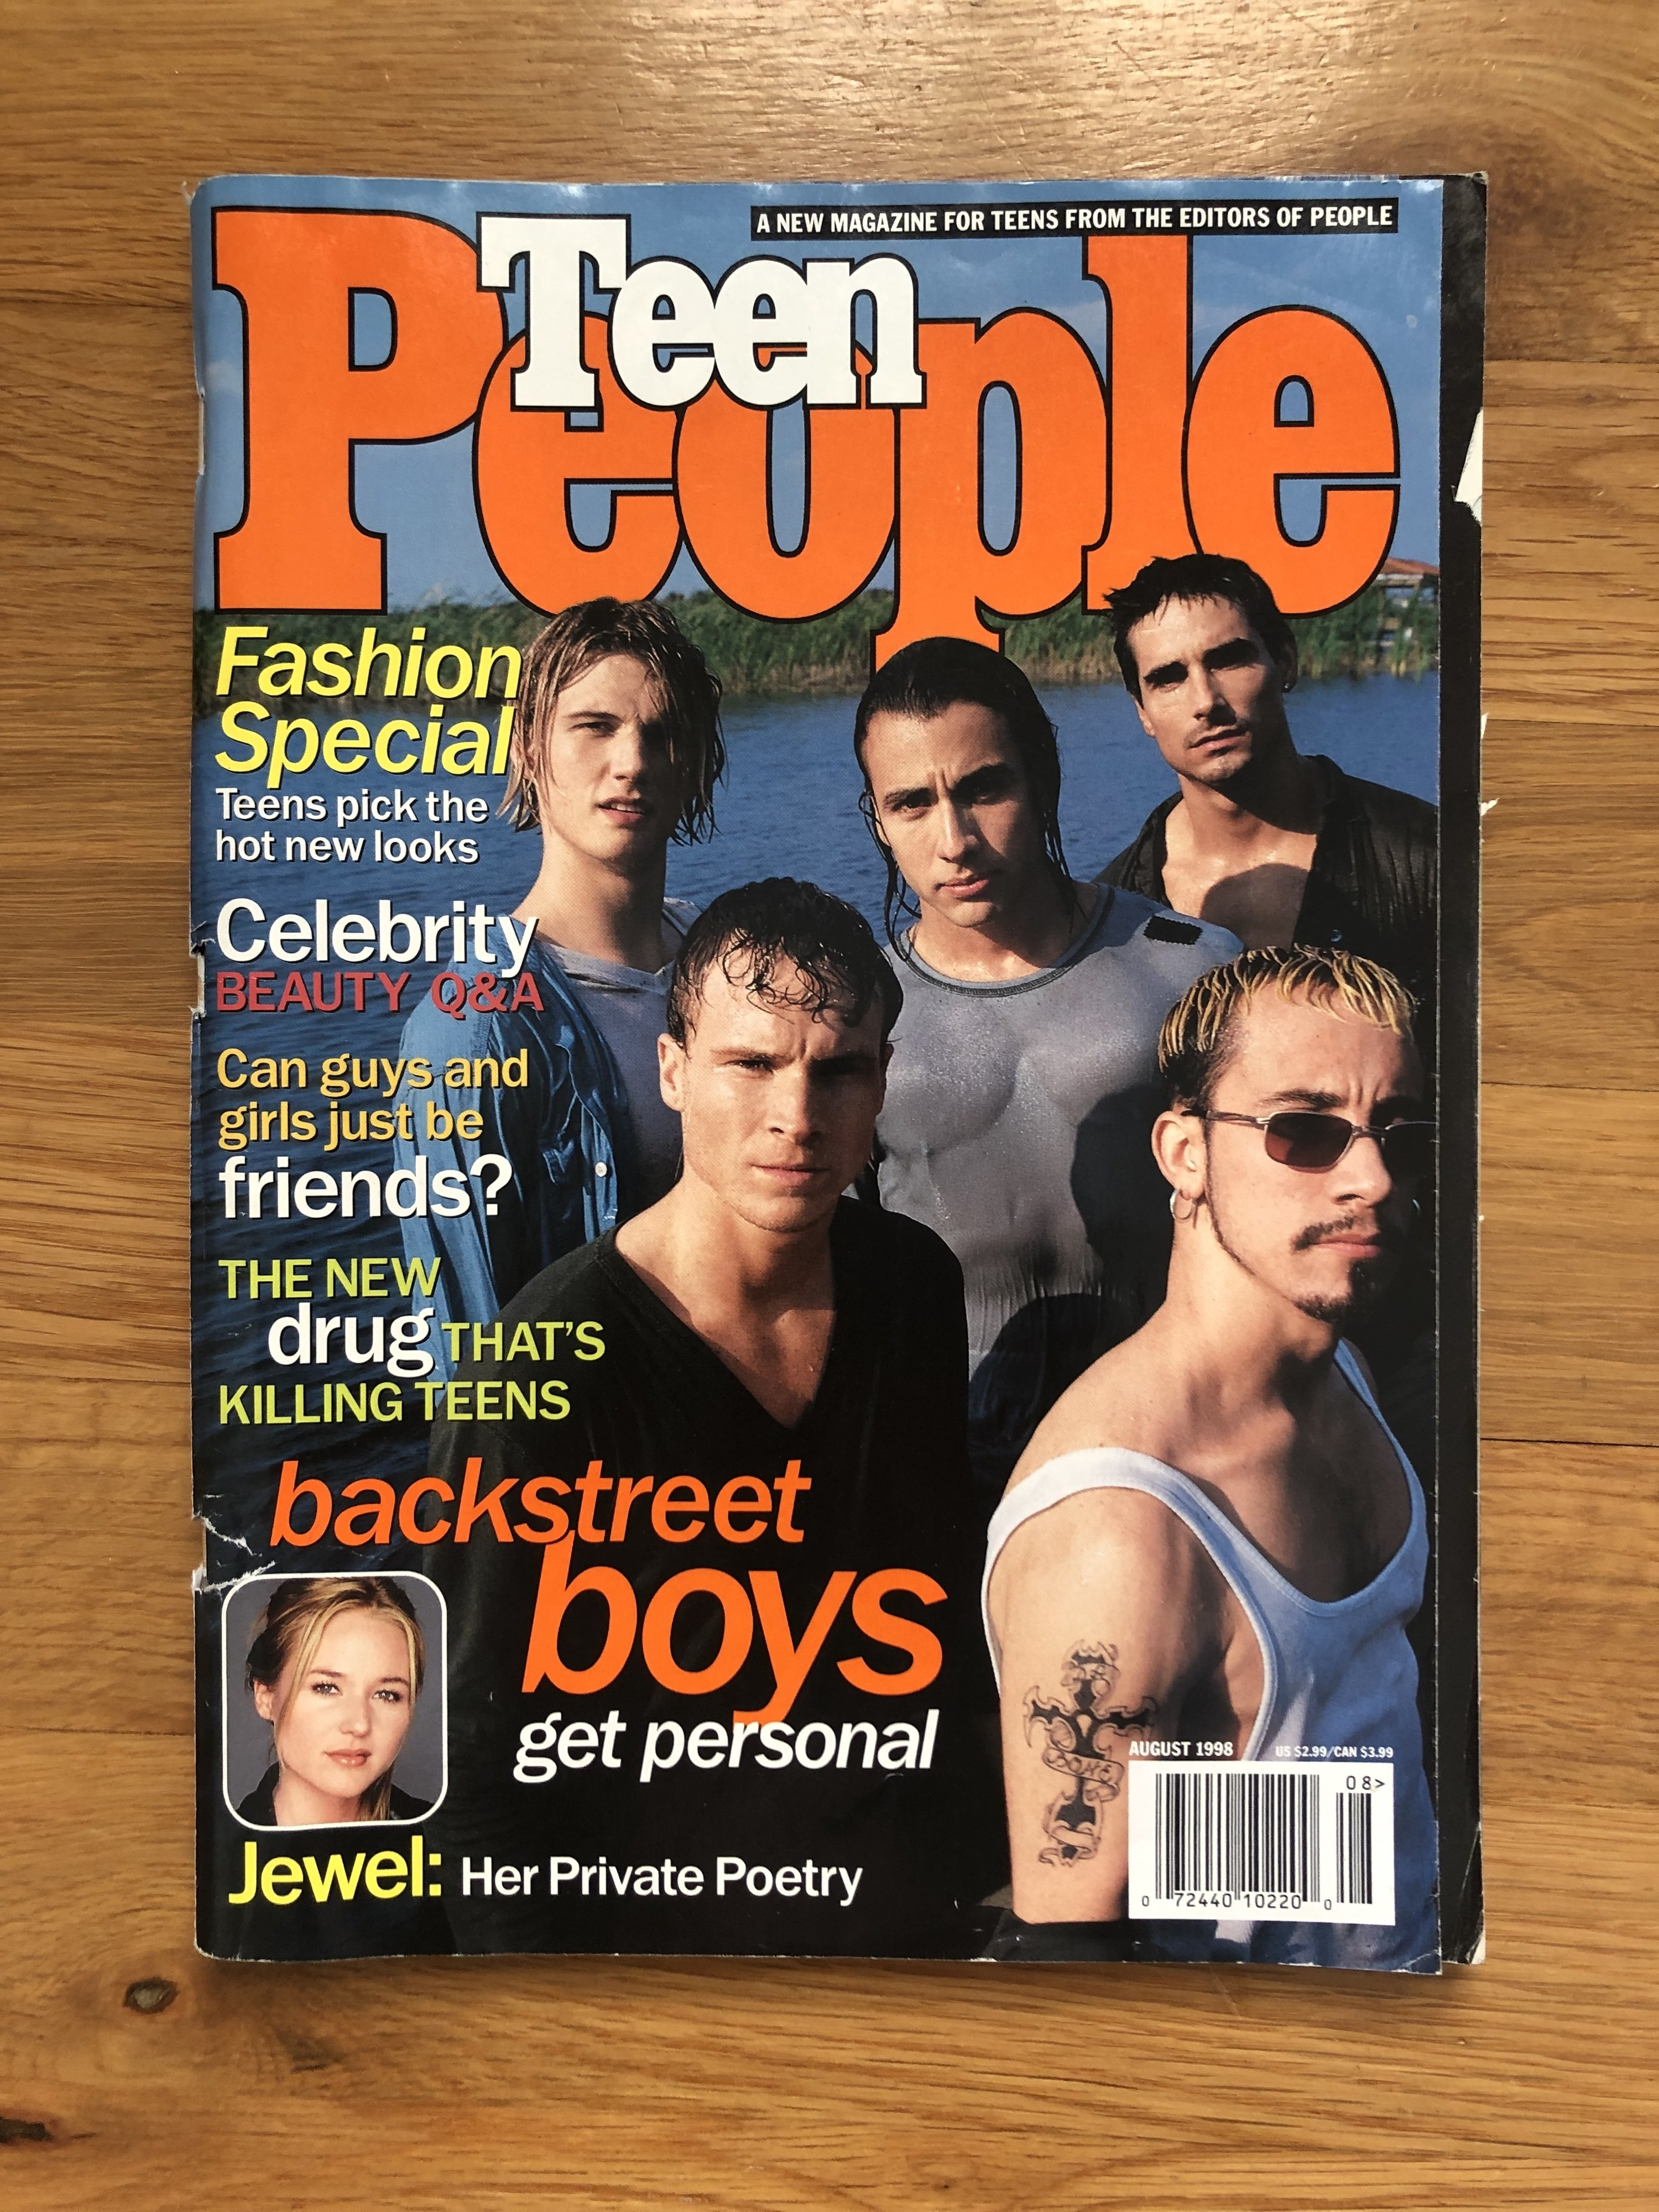 """Magazine cover also includes article titles, like: """"Jewel: Her Private Poetry,"""" """"Fashion Special: Teens pick the hot new looks"""""""